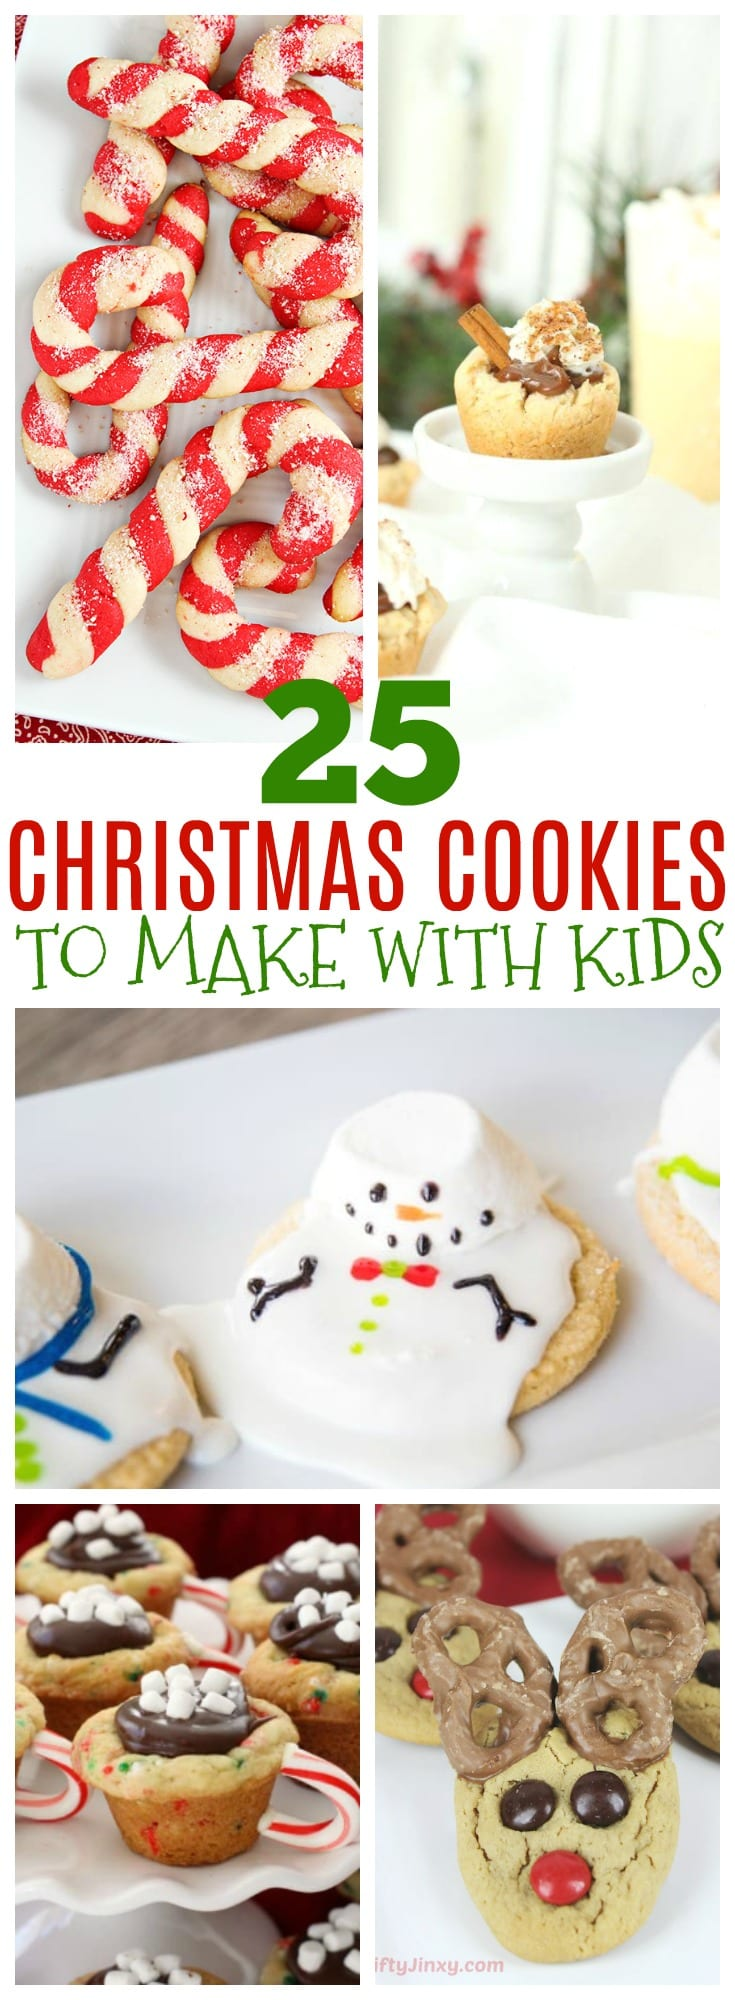 For Children At The Holidays Is Baking Christmas Cookies With Their Parents Whether Decorating Store Bought Cut Outs Or From Scratch Recipes